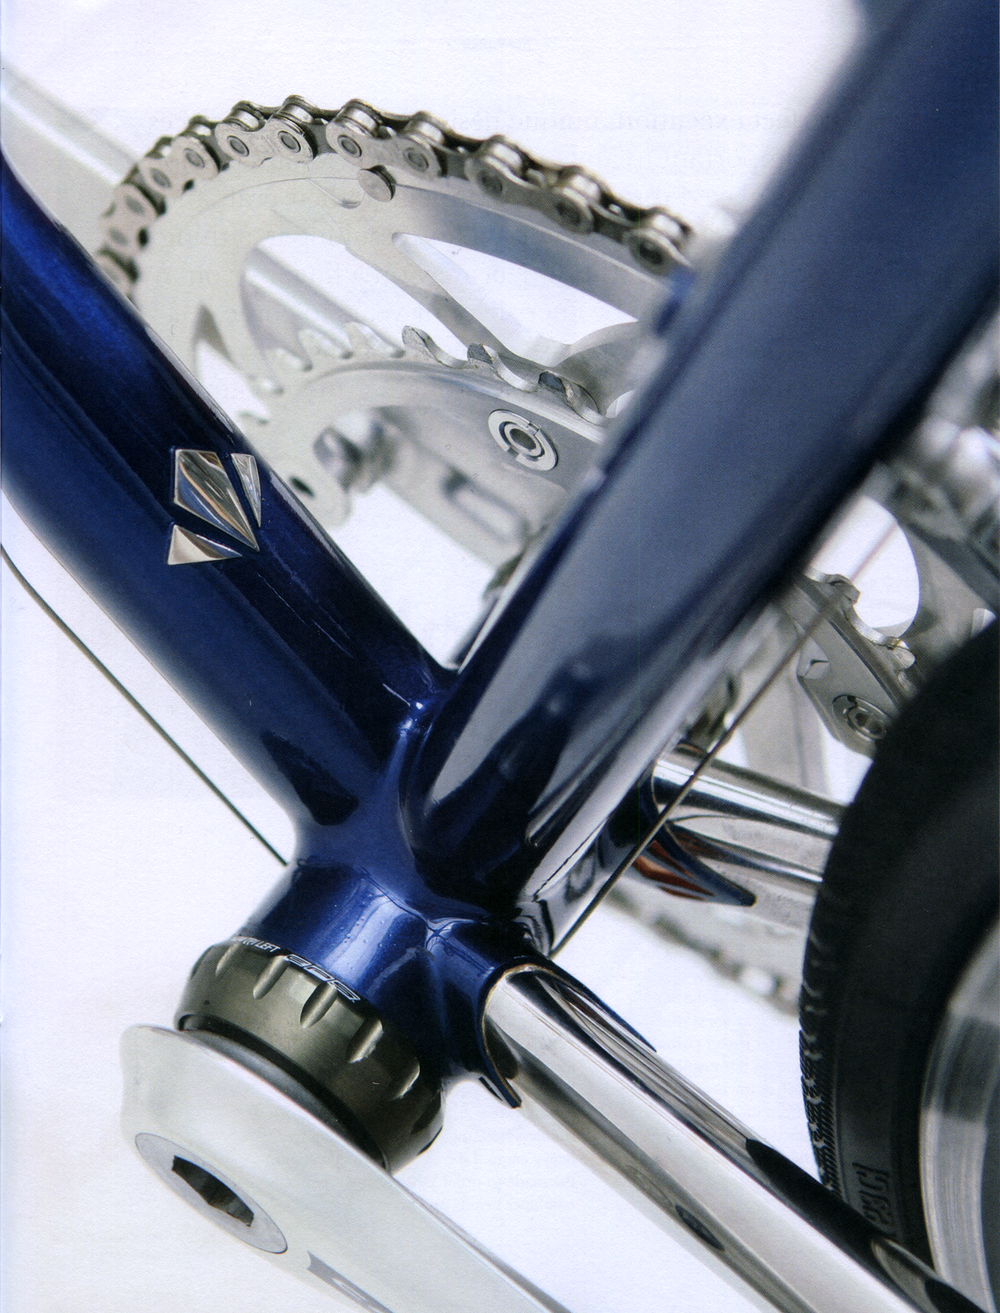 hc_creative_update_2_bespoke_bicycles_hartley_london